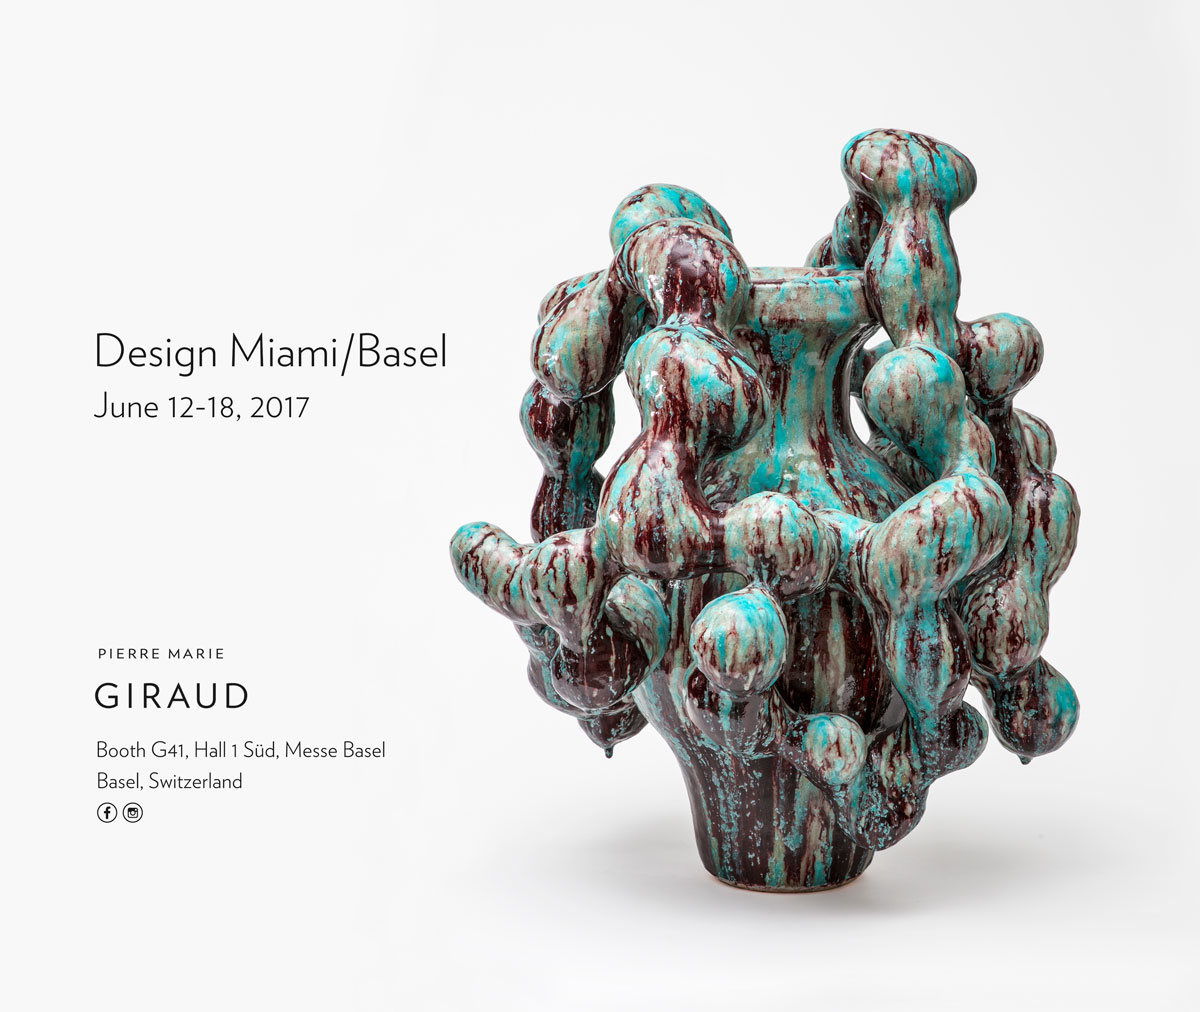 Design Miami /Basel 2017